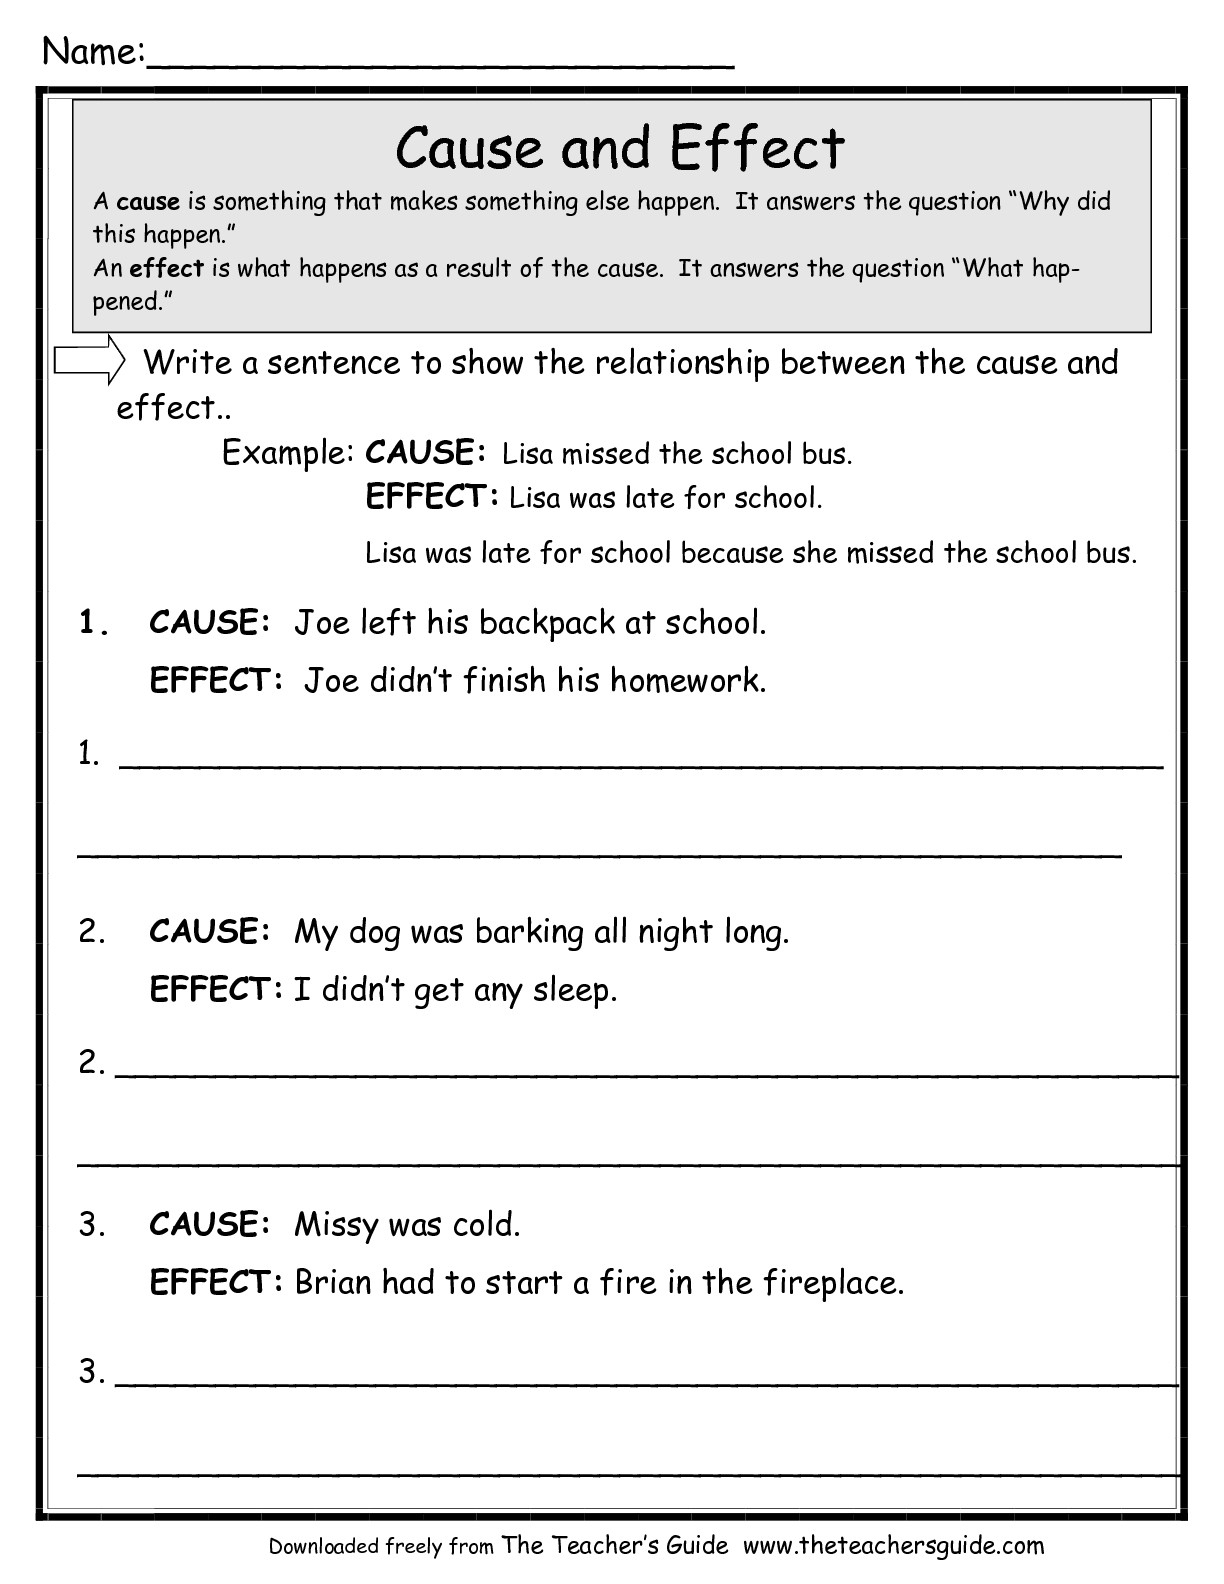 Cause And Effect Worksheets From The Teacher's Guide | Free Printable Cause And Effect Worksheets For Third Grade